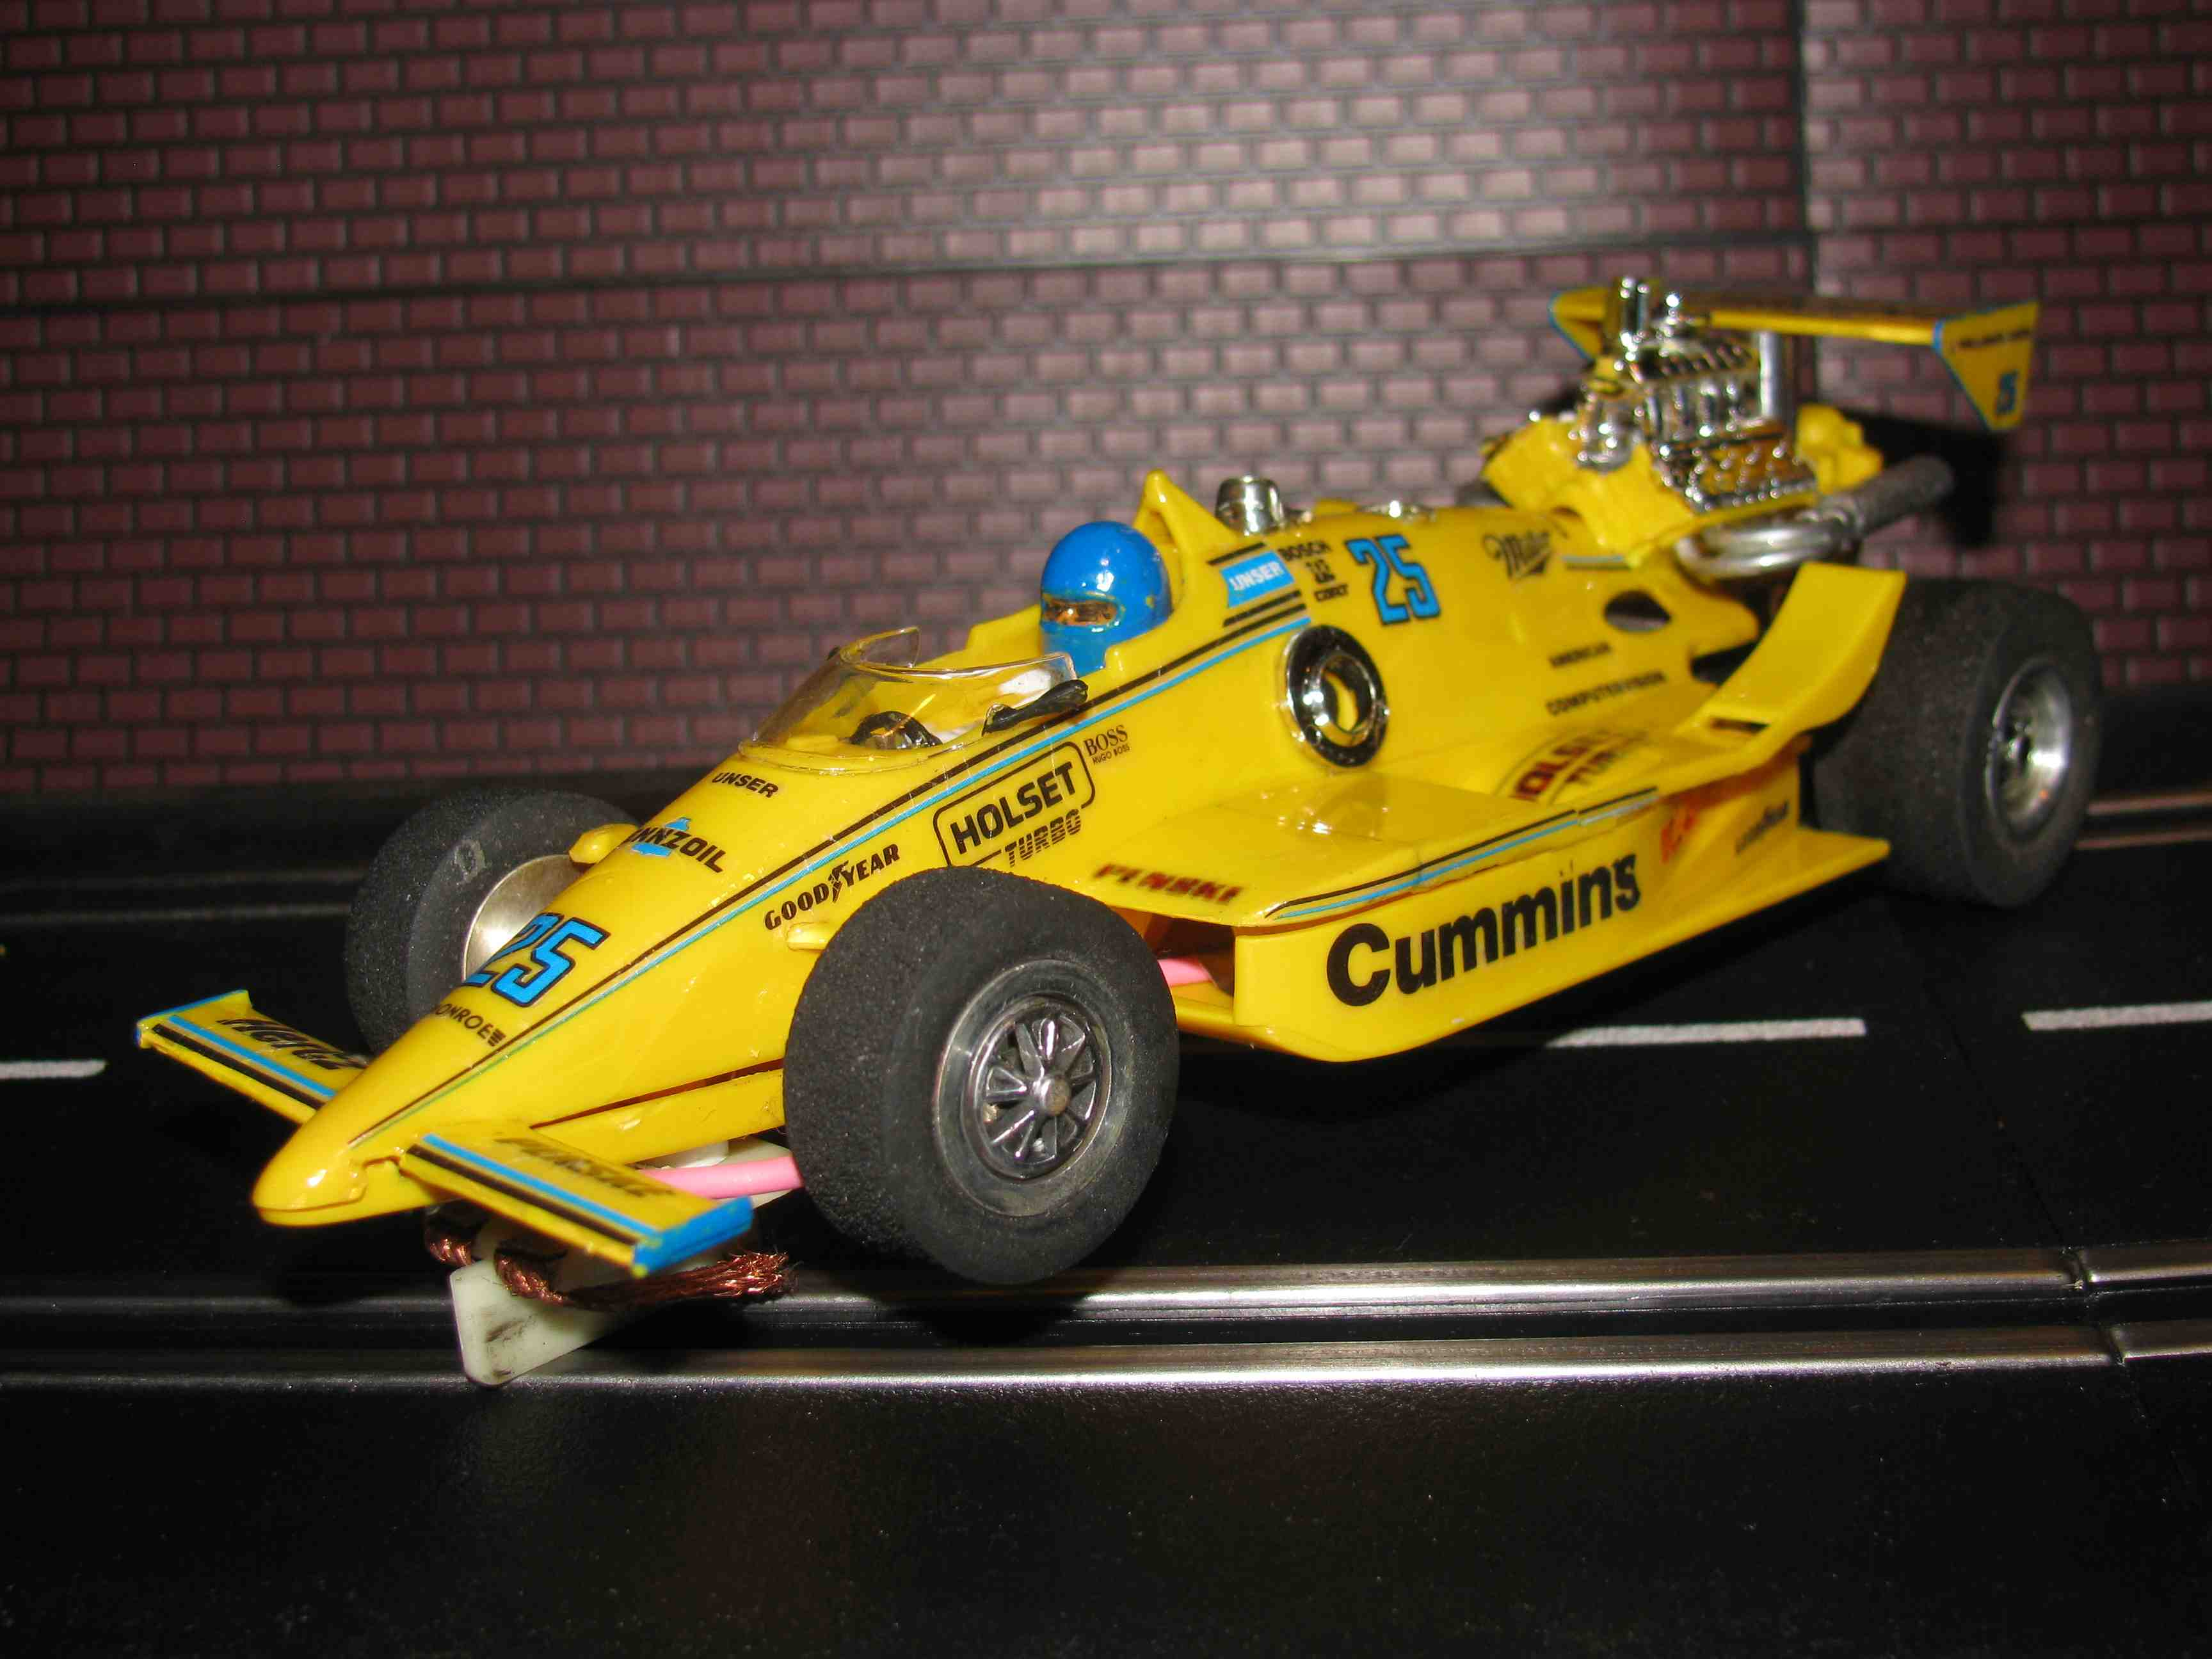 *SOLD* Cummins Formula 1 Pennzoil Racing Titan 2 Slot Car 1/24 Scale – Yellow - Car 25